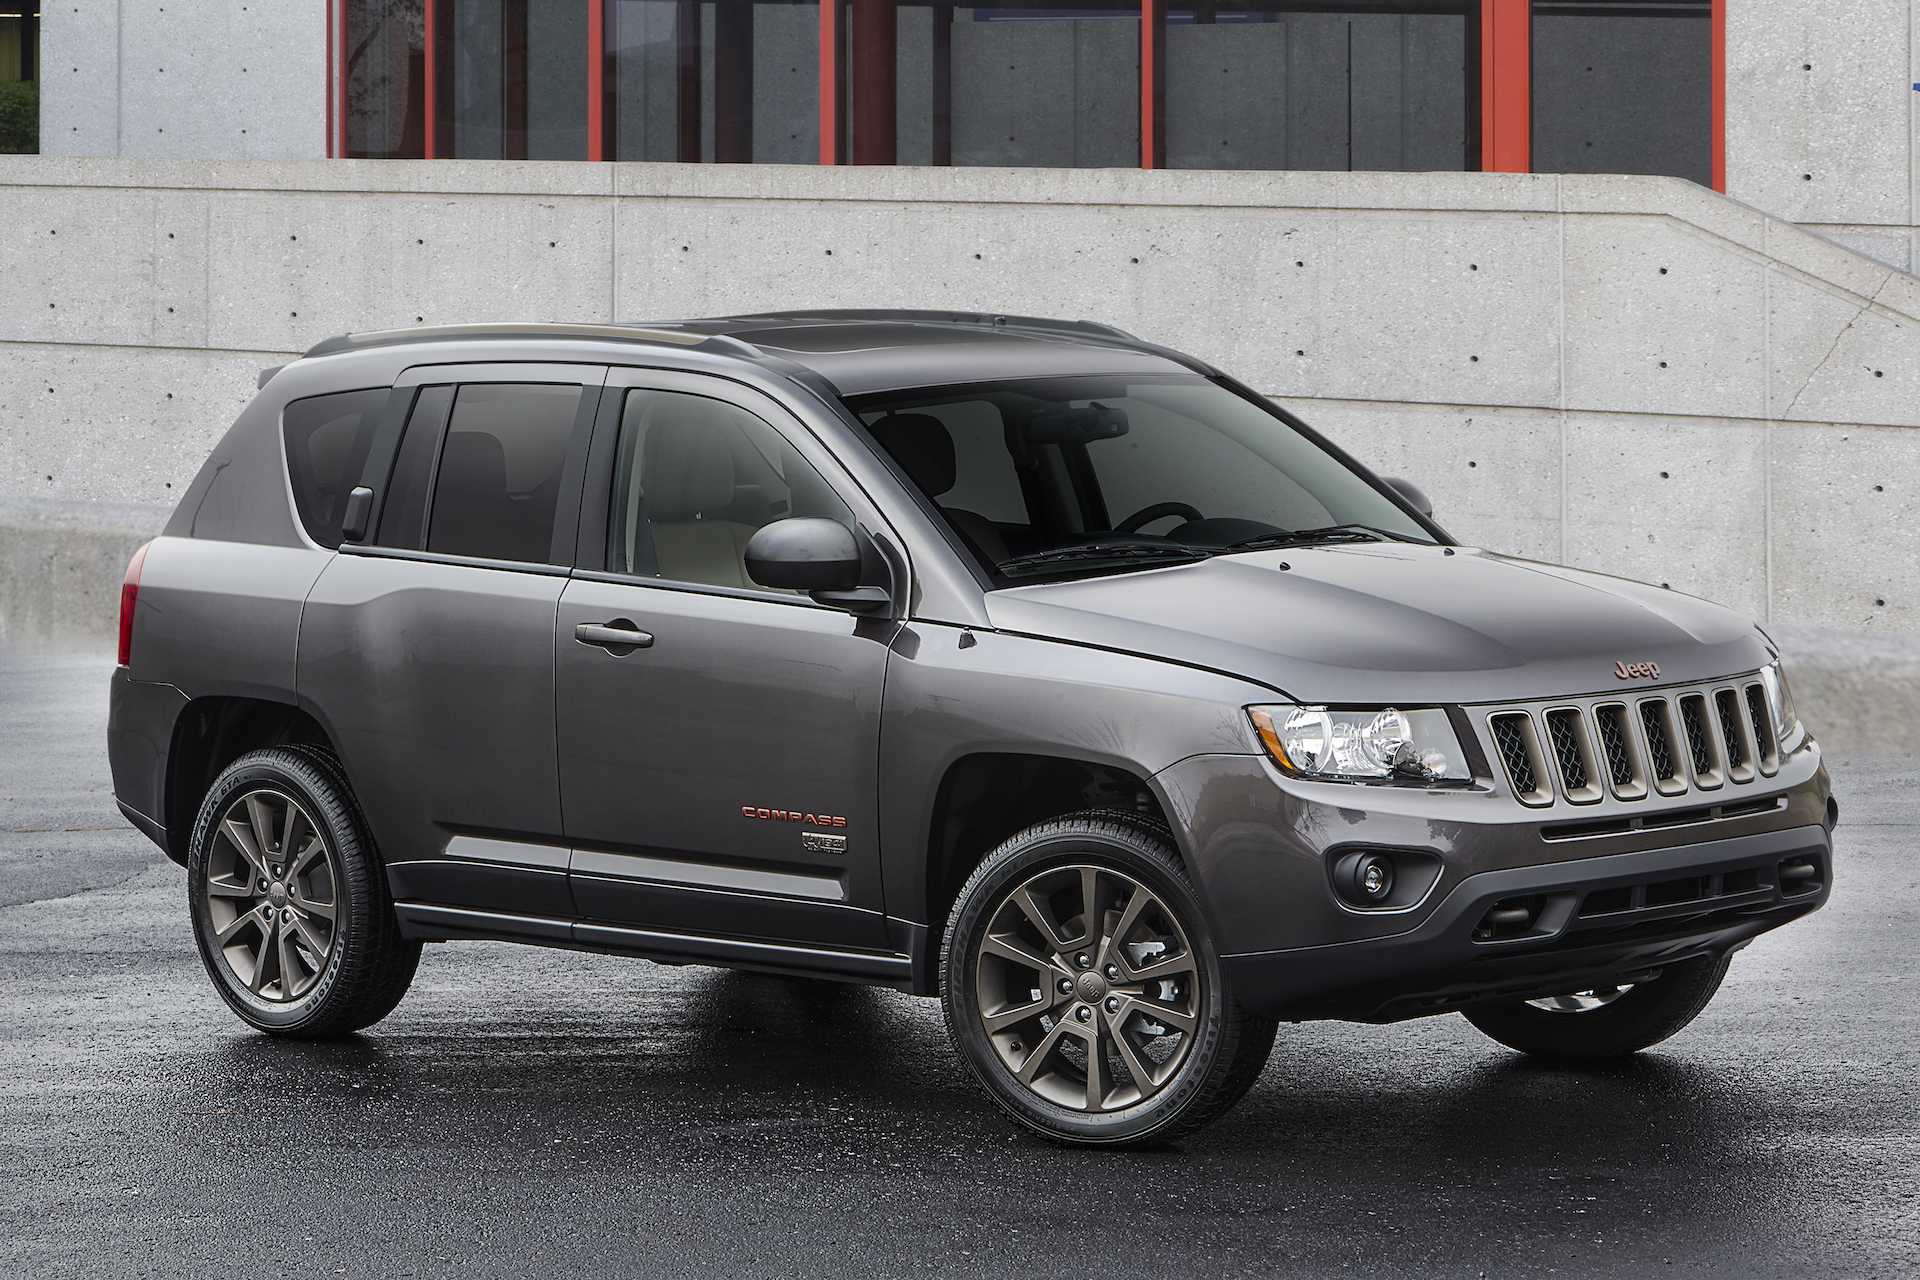 Cadillac El Paso >> 2017 Jeep Compass Review, Ratings, Specs, Prices, and Photos - The Car Connection